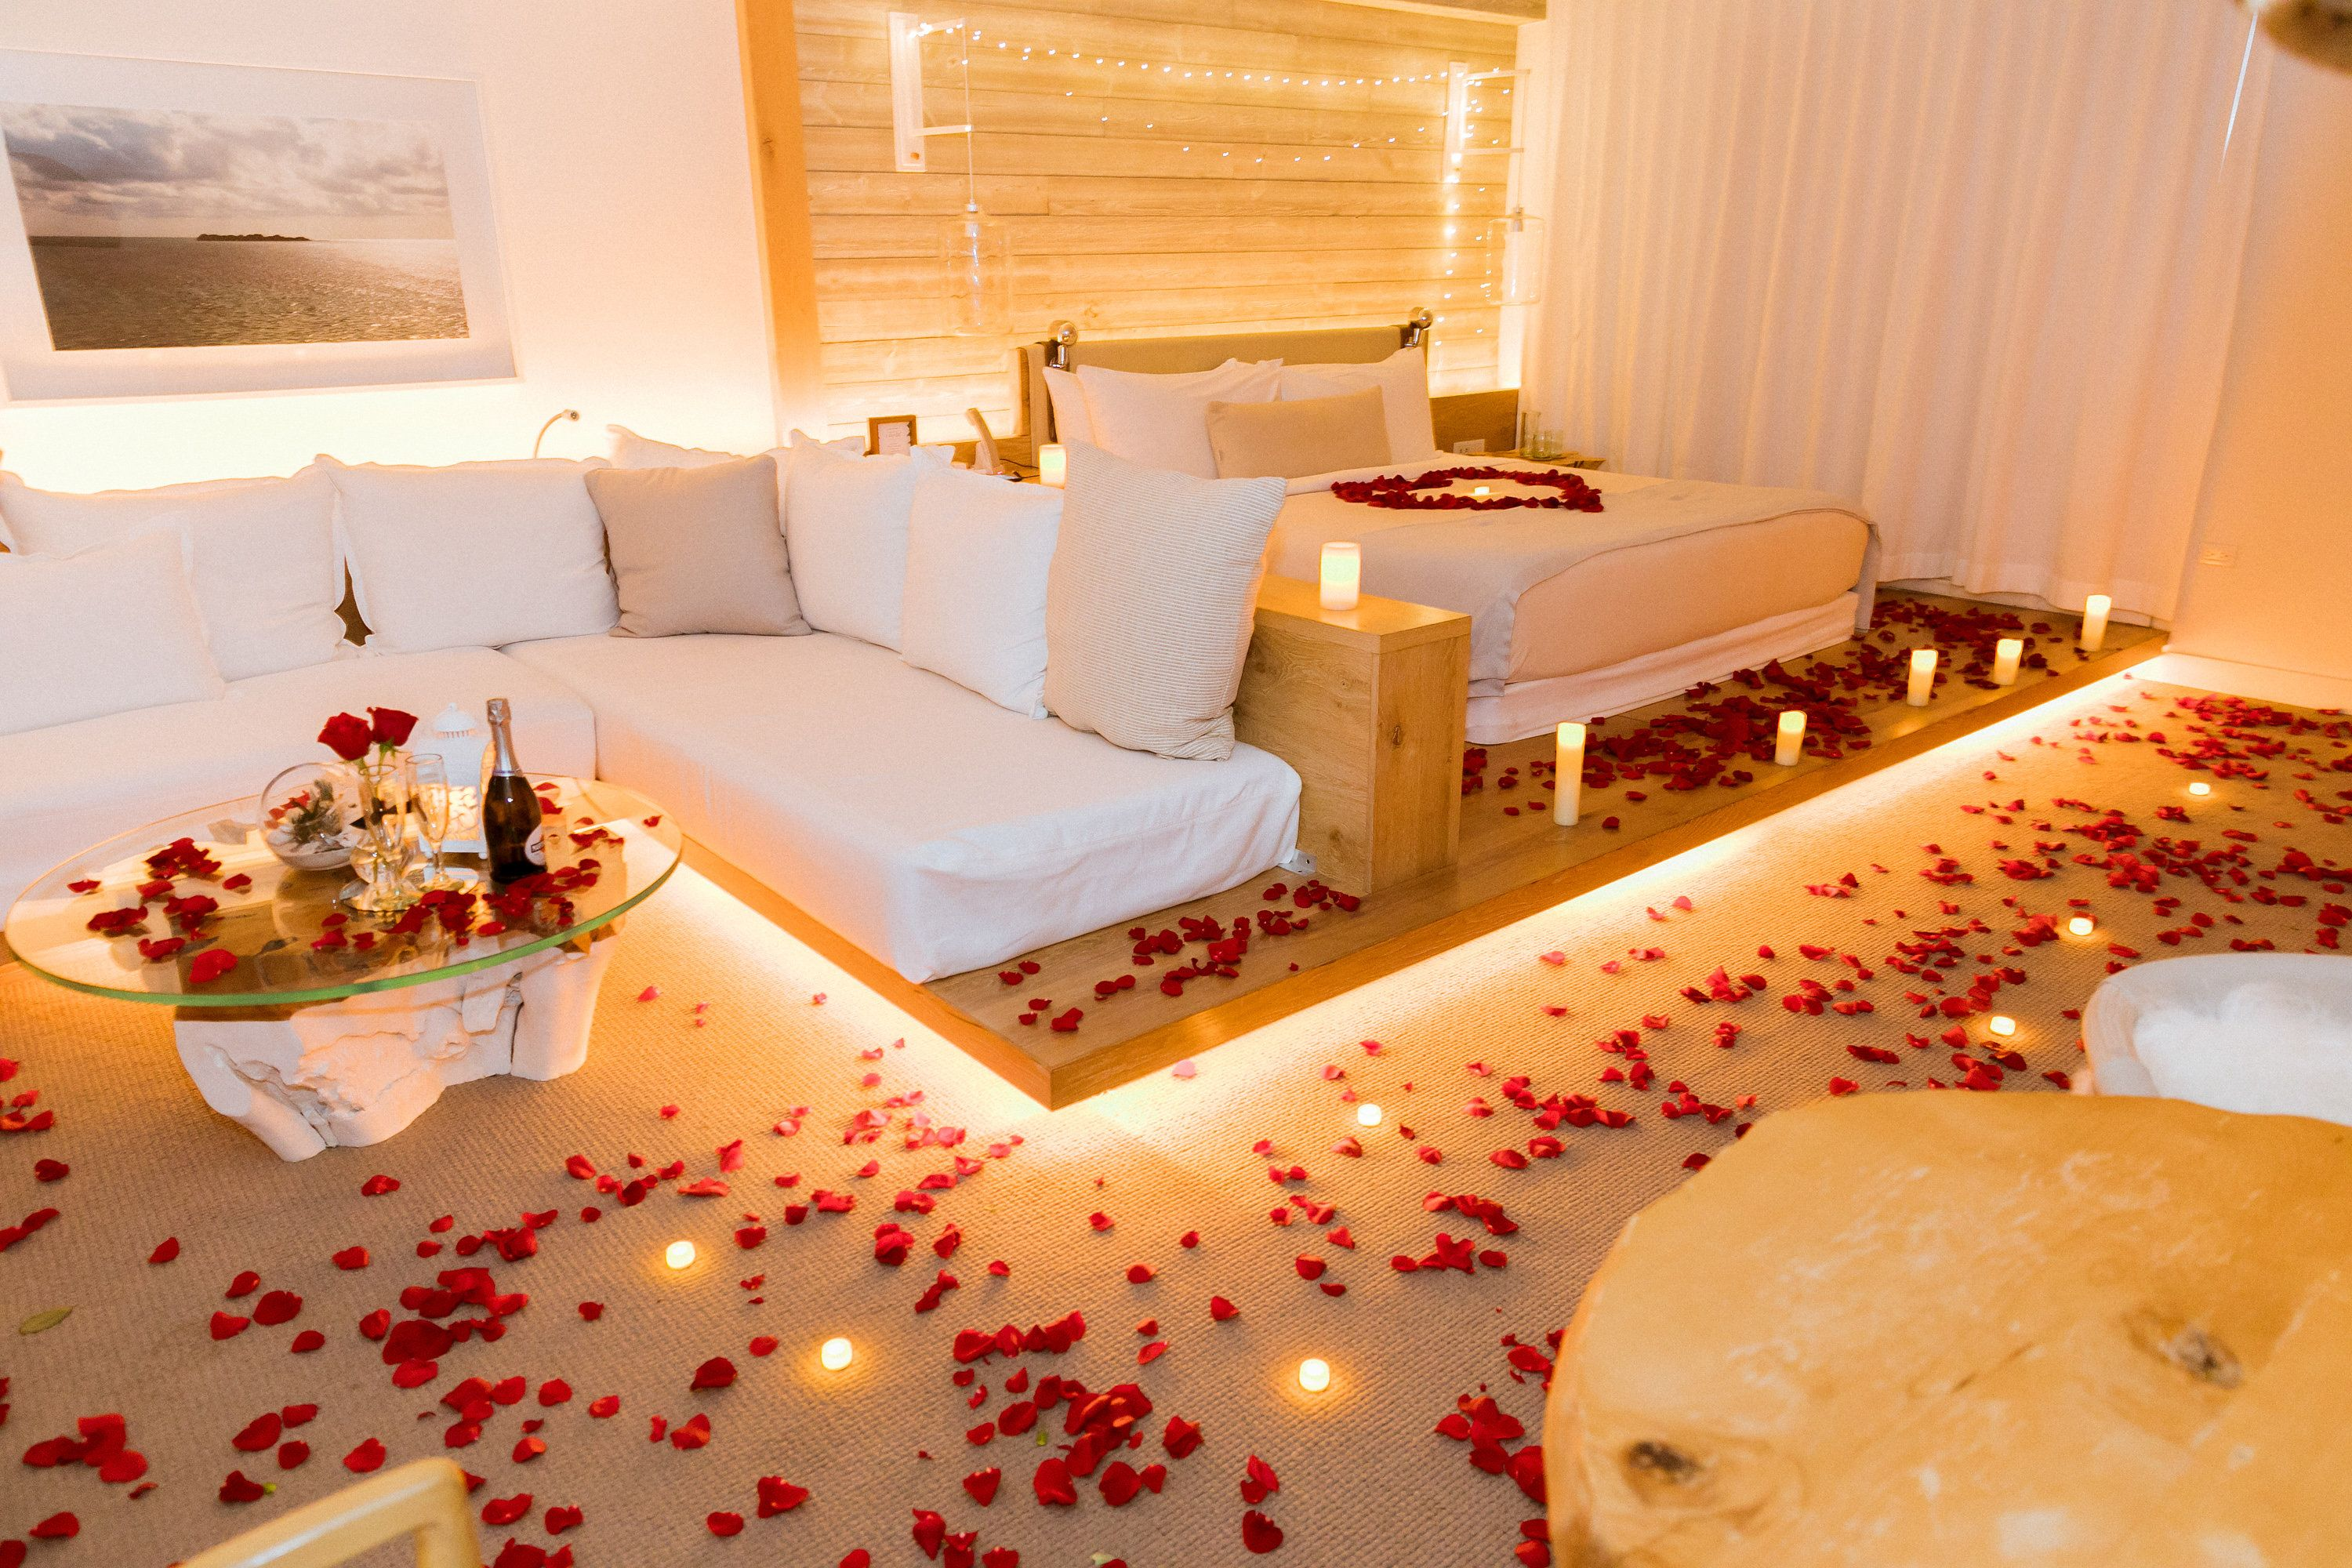 The Romantic Hotel Room Decoration In 1 Hotel Miami Real Rose Petals Candles And Flowers Romantic Hotel Rooms Hotel Room Decoration Romantic Room Surprise